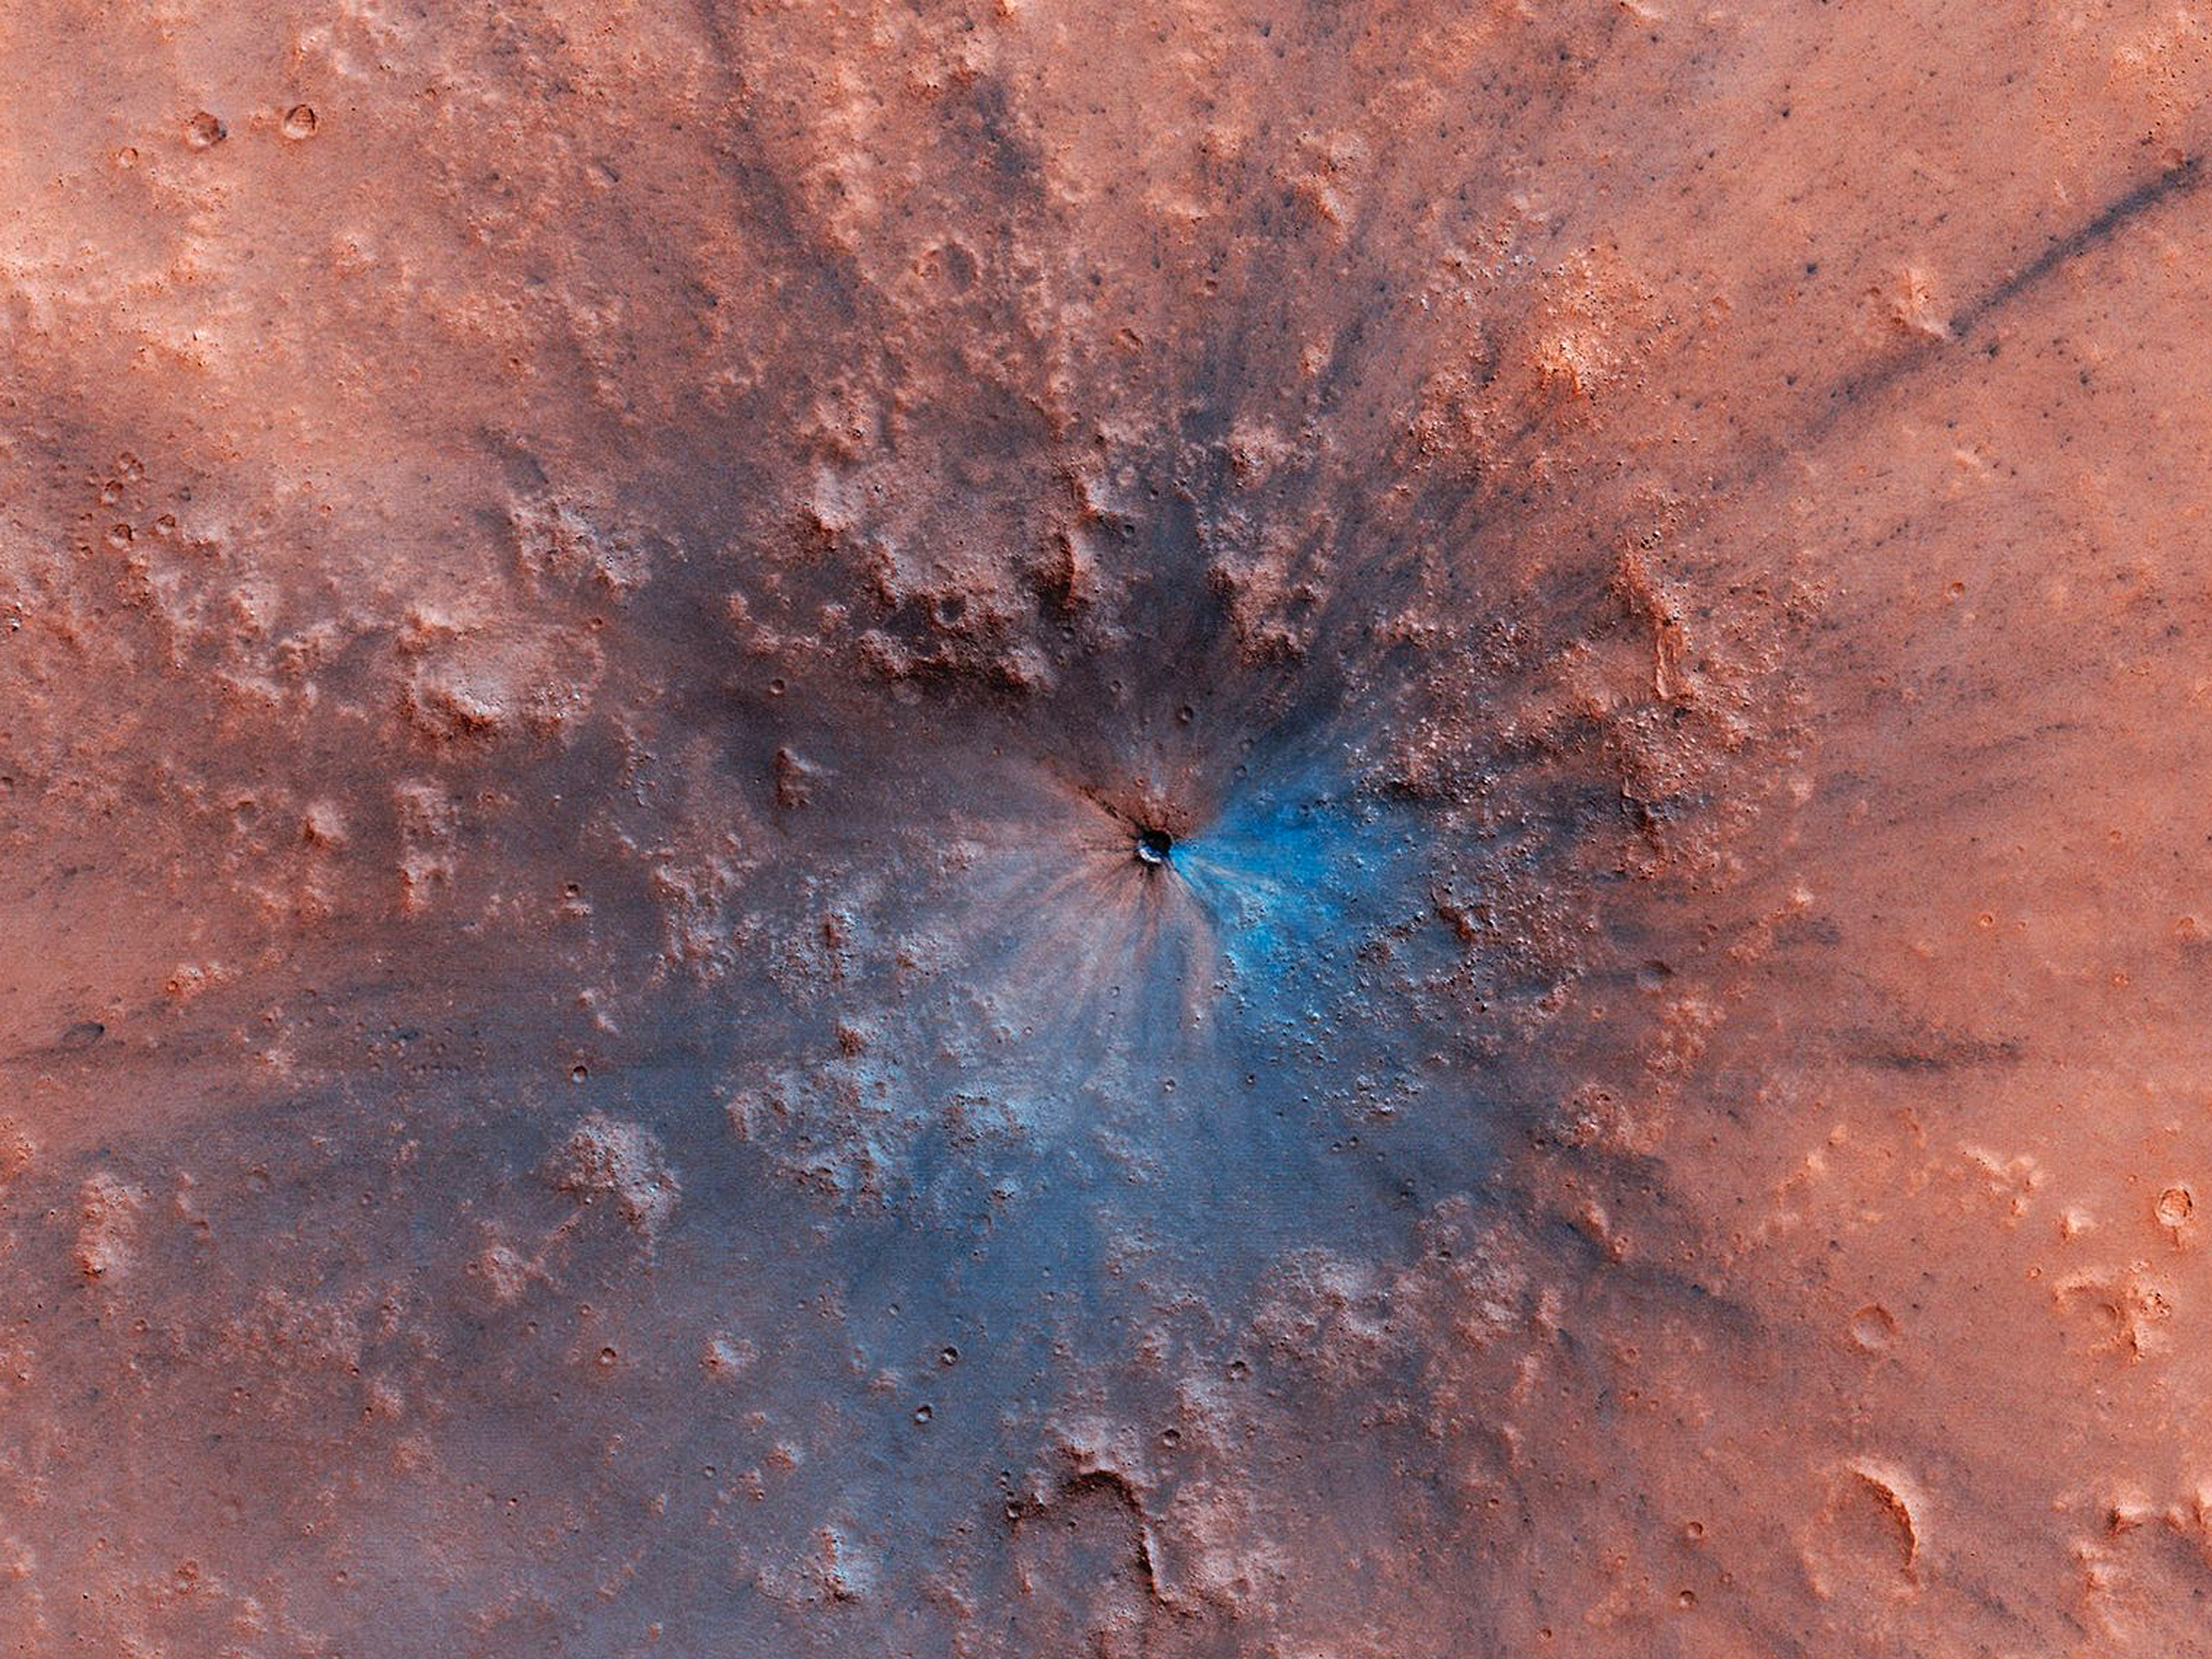 Planeta Marte crater imagine